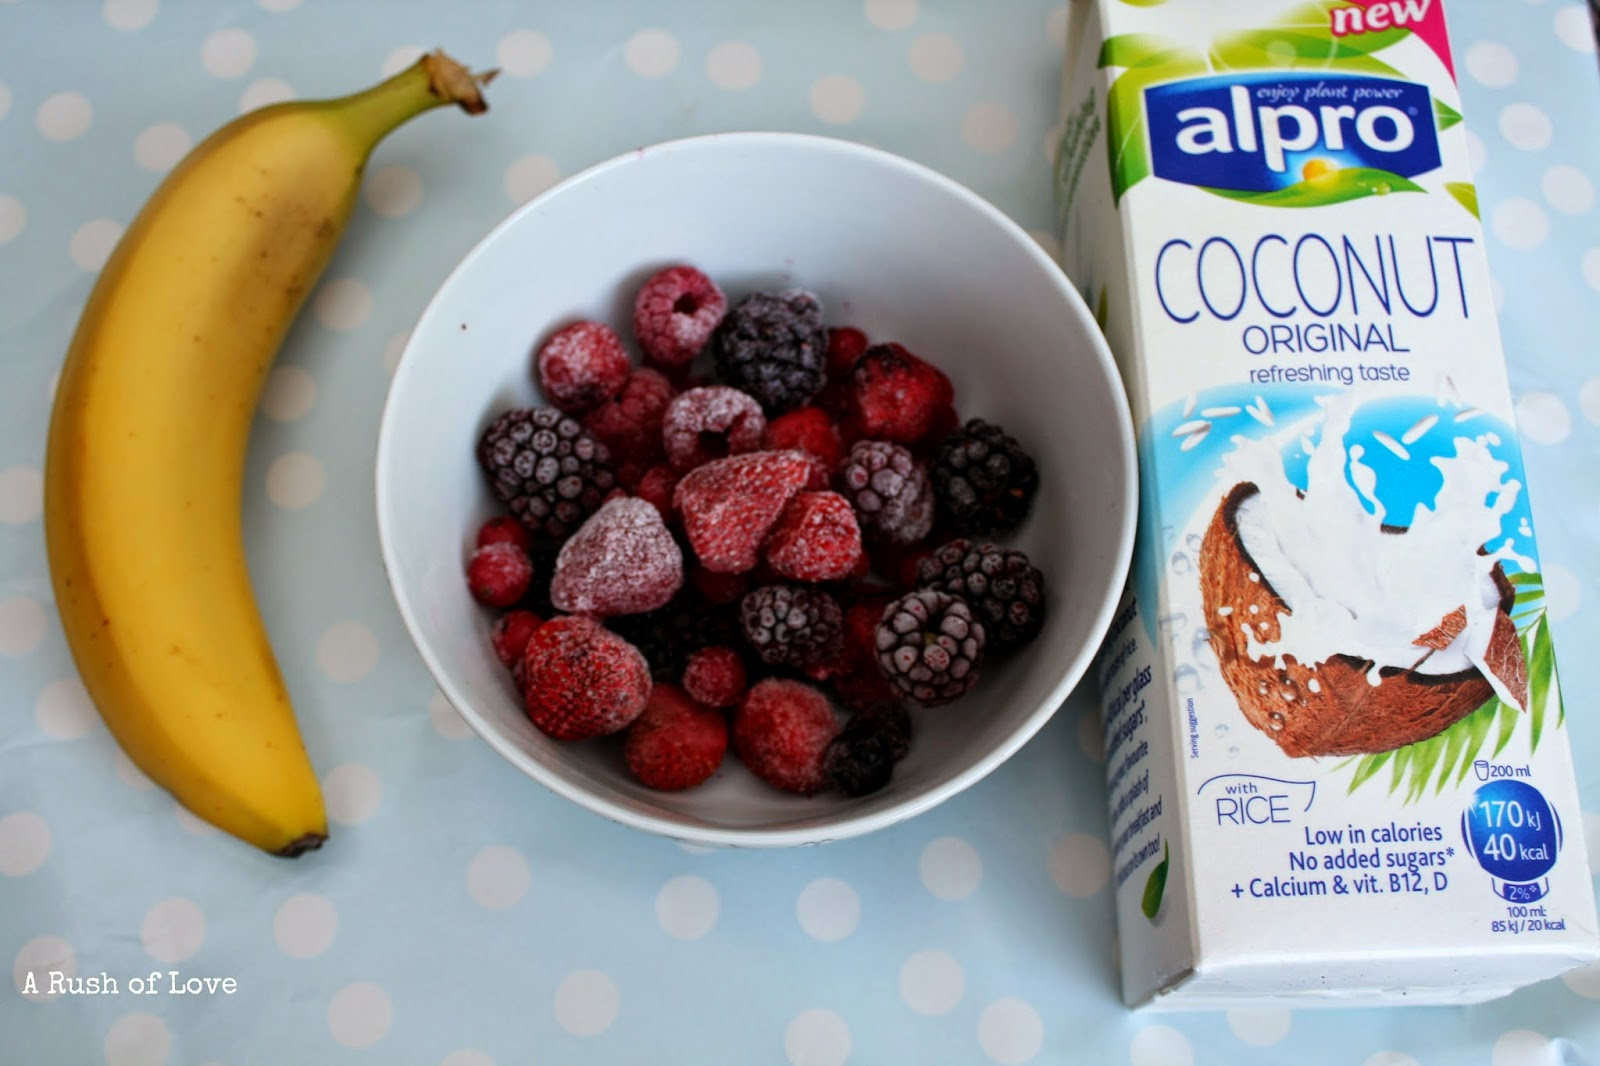 A rush of love dairy free coconut berry banana for Alpro coconut cuisine